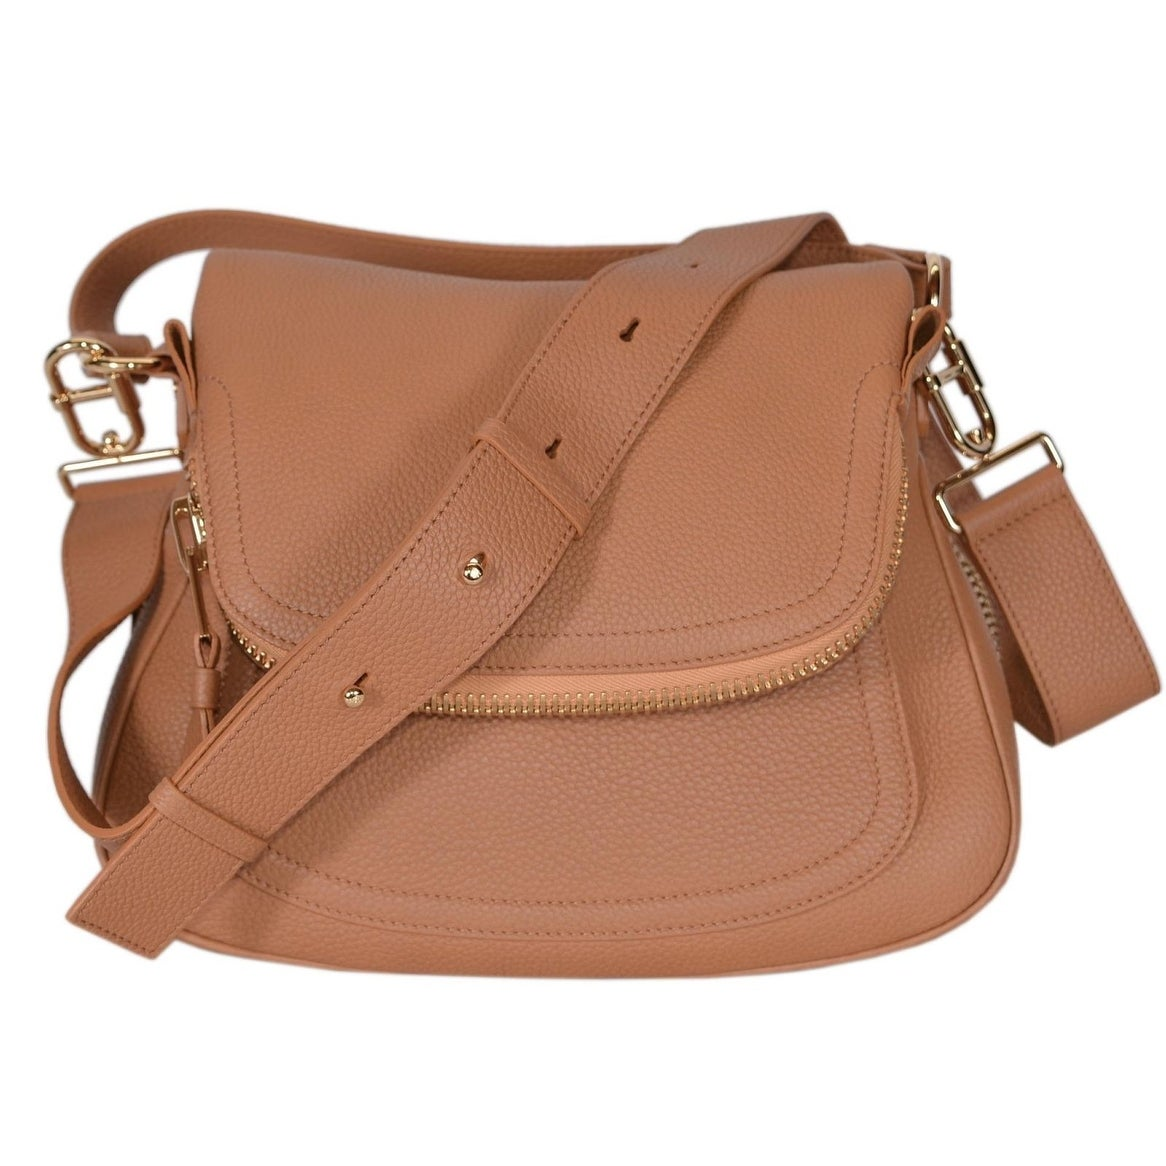 4bf1ece08 Shop Tom Ford Women's Tan Leather JENNIFER Crossbody Saddle Bag Purse -  whiskey beige - 12.7